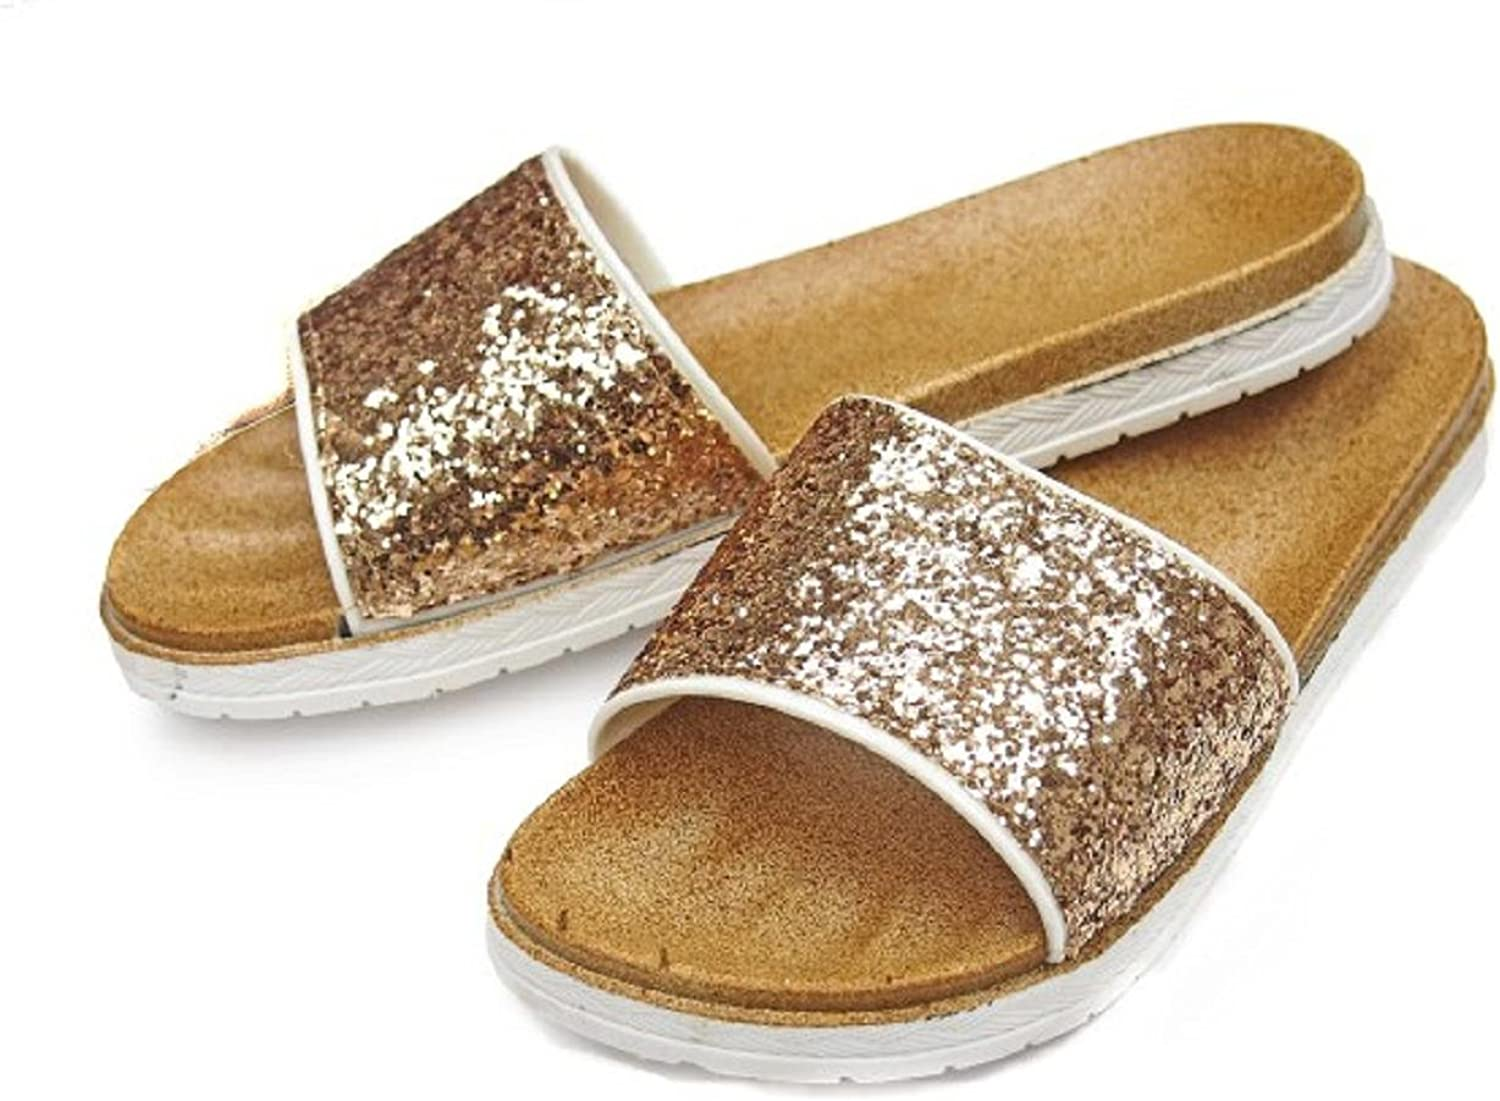 DINY Home & Style Ladies Women's Glitter Faux Leather Slide Sandals